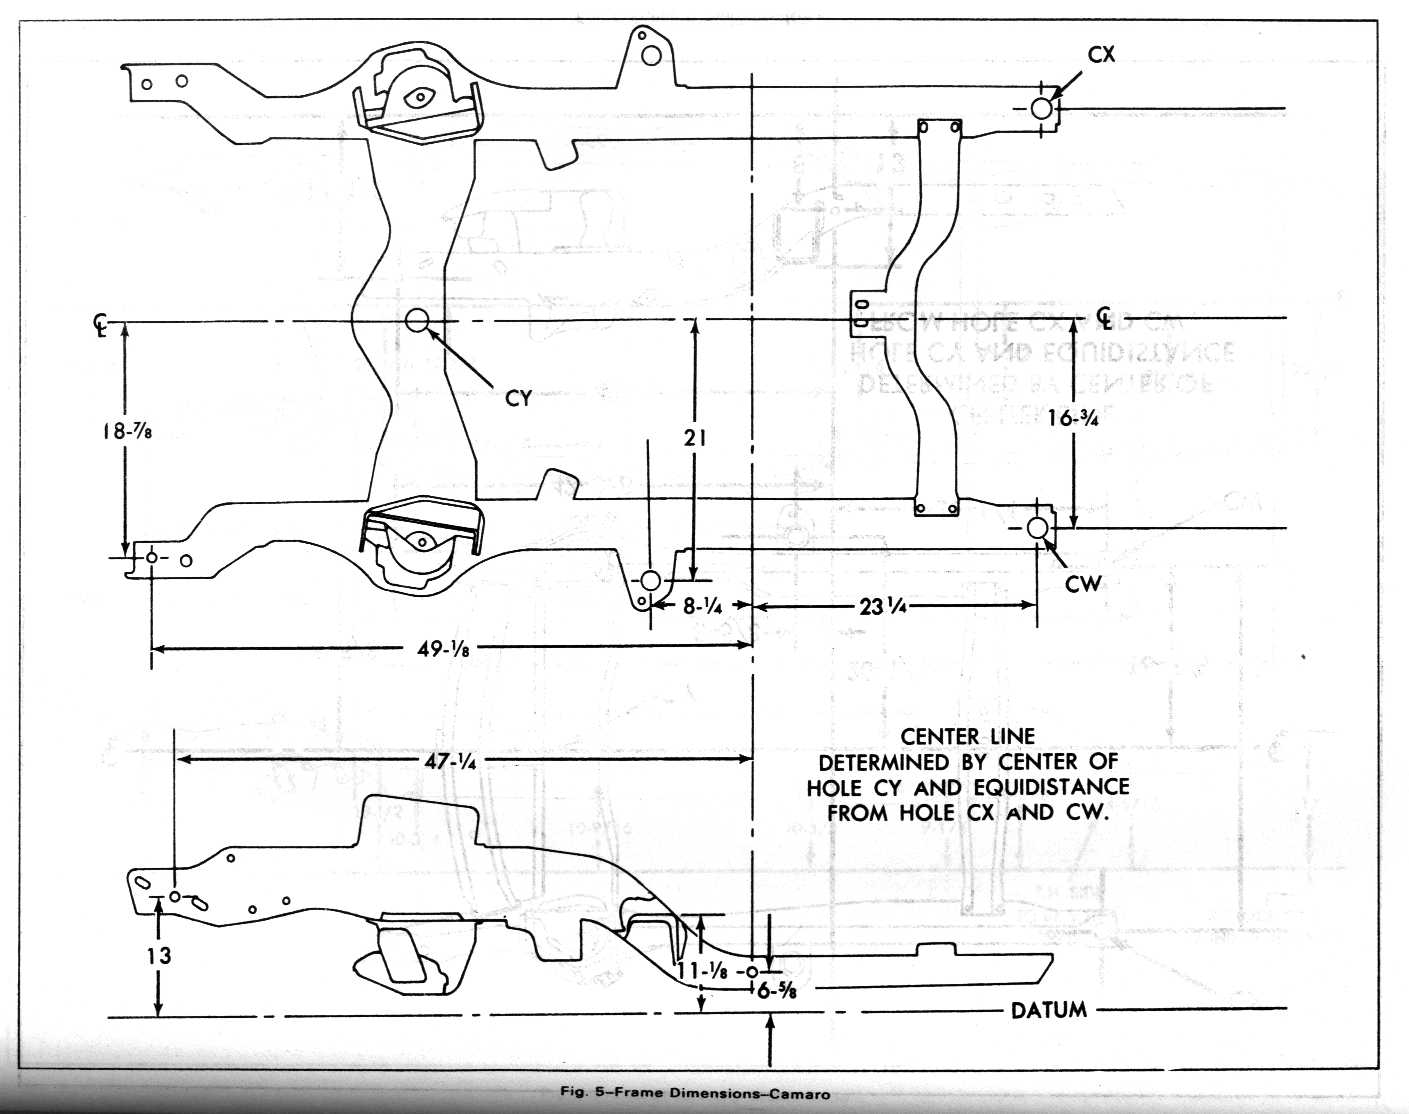 hight resolution of camaro engine diagram 1st generation wiring diagram samplefirst gen suspension camaro engine diagram 1st generation camaro